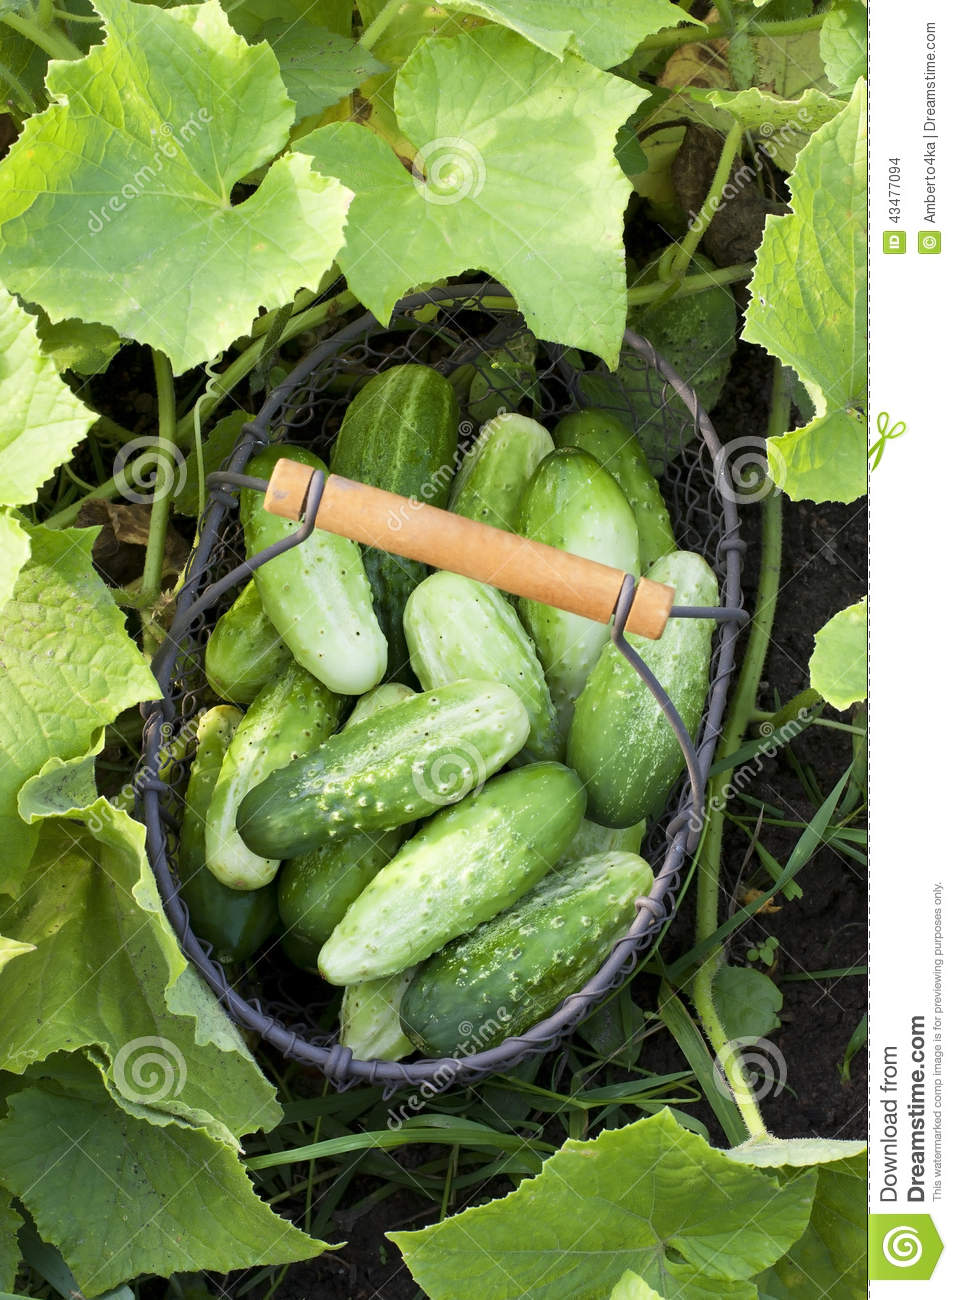 Cucumbers In The Garden Stock Photo Image 43477094